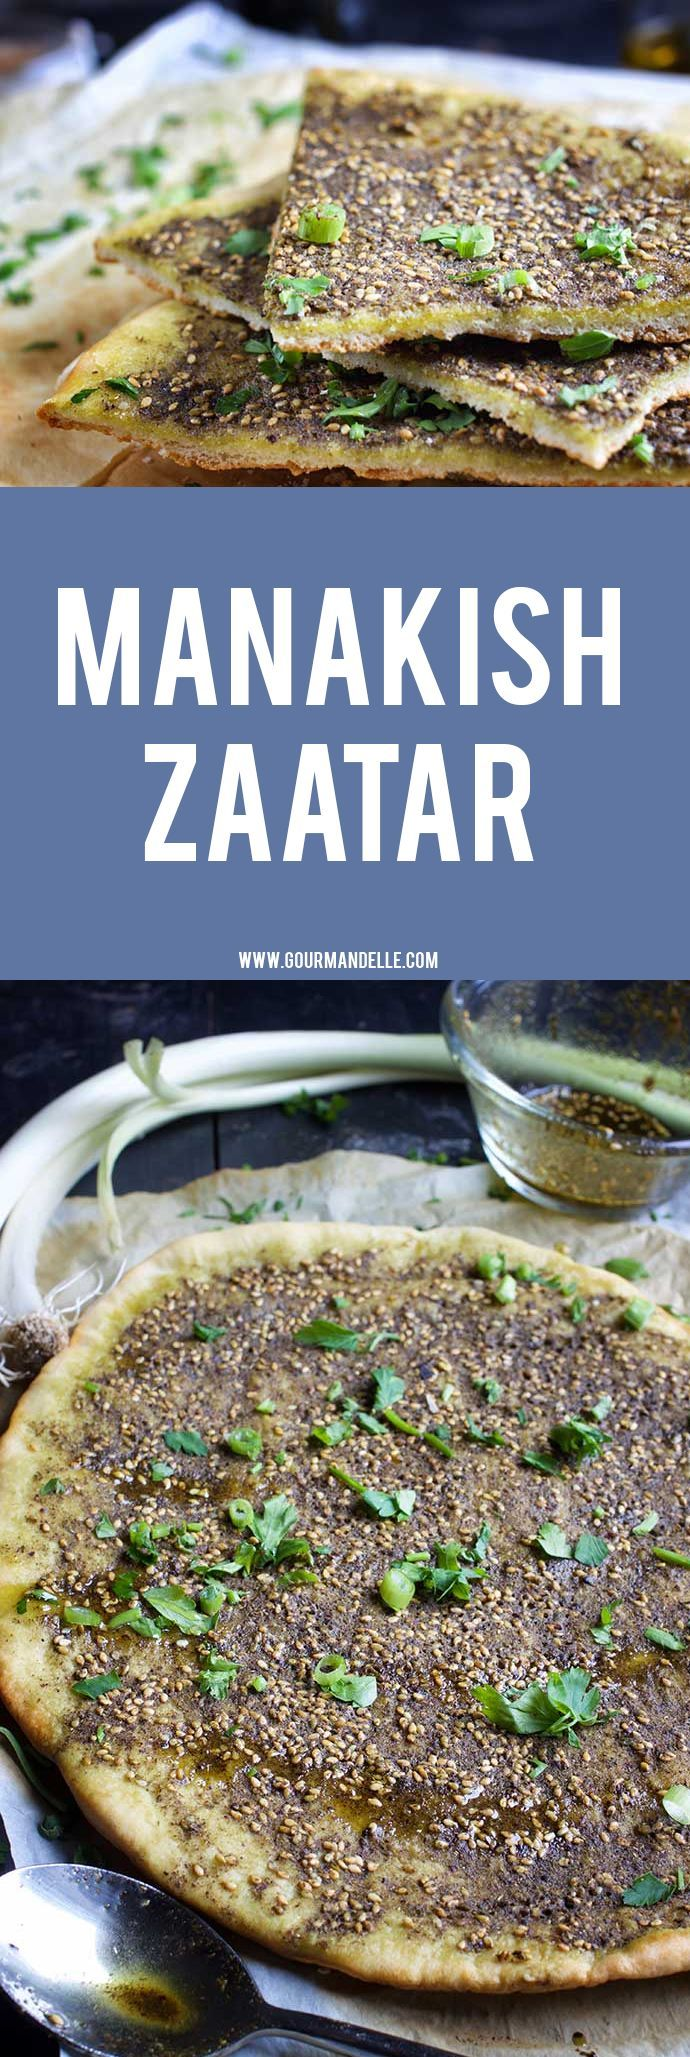 Manakish Zaatar or spiced pita bread is a popular Middle Eastern recipe very similar to pizza. It's bursting with flavors and can be served as a snack or for breakfast, lunch and even dinner. #vegetarian #vegan #veganrecipes